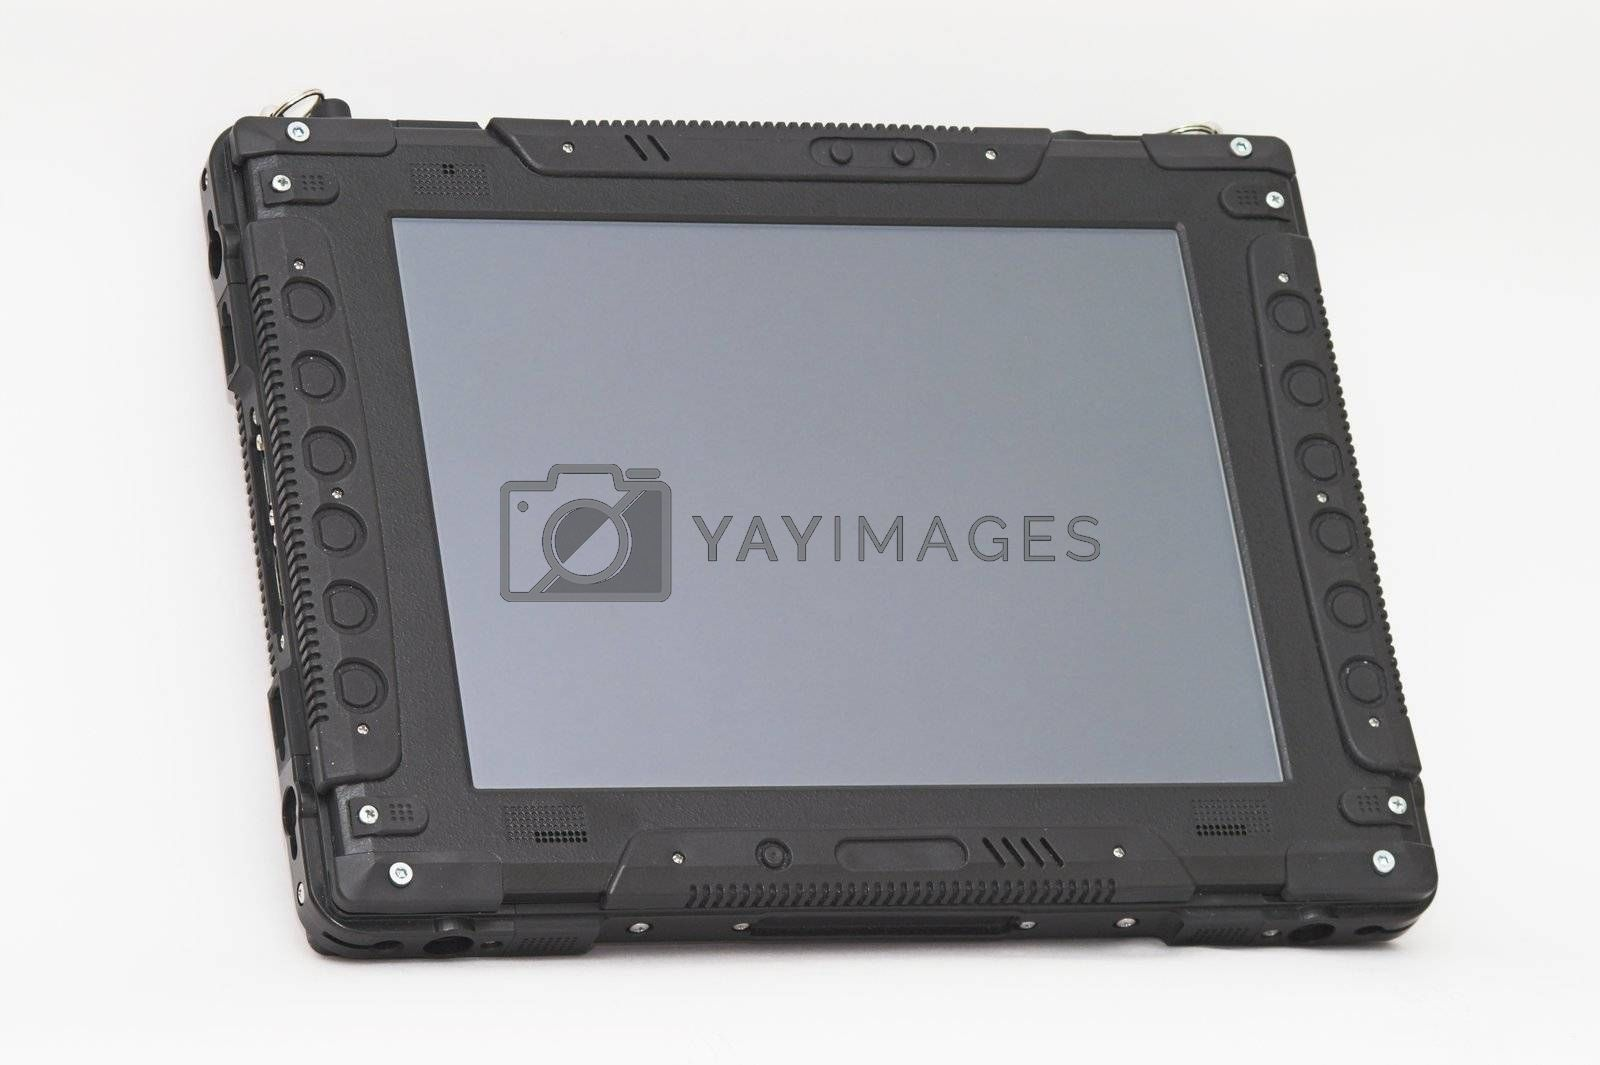 Robust Industrial Computer for rugged environment